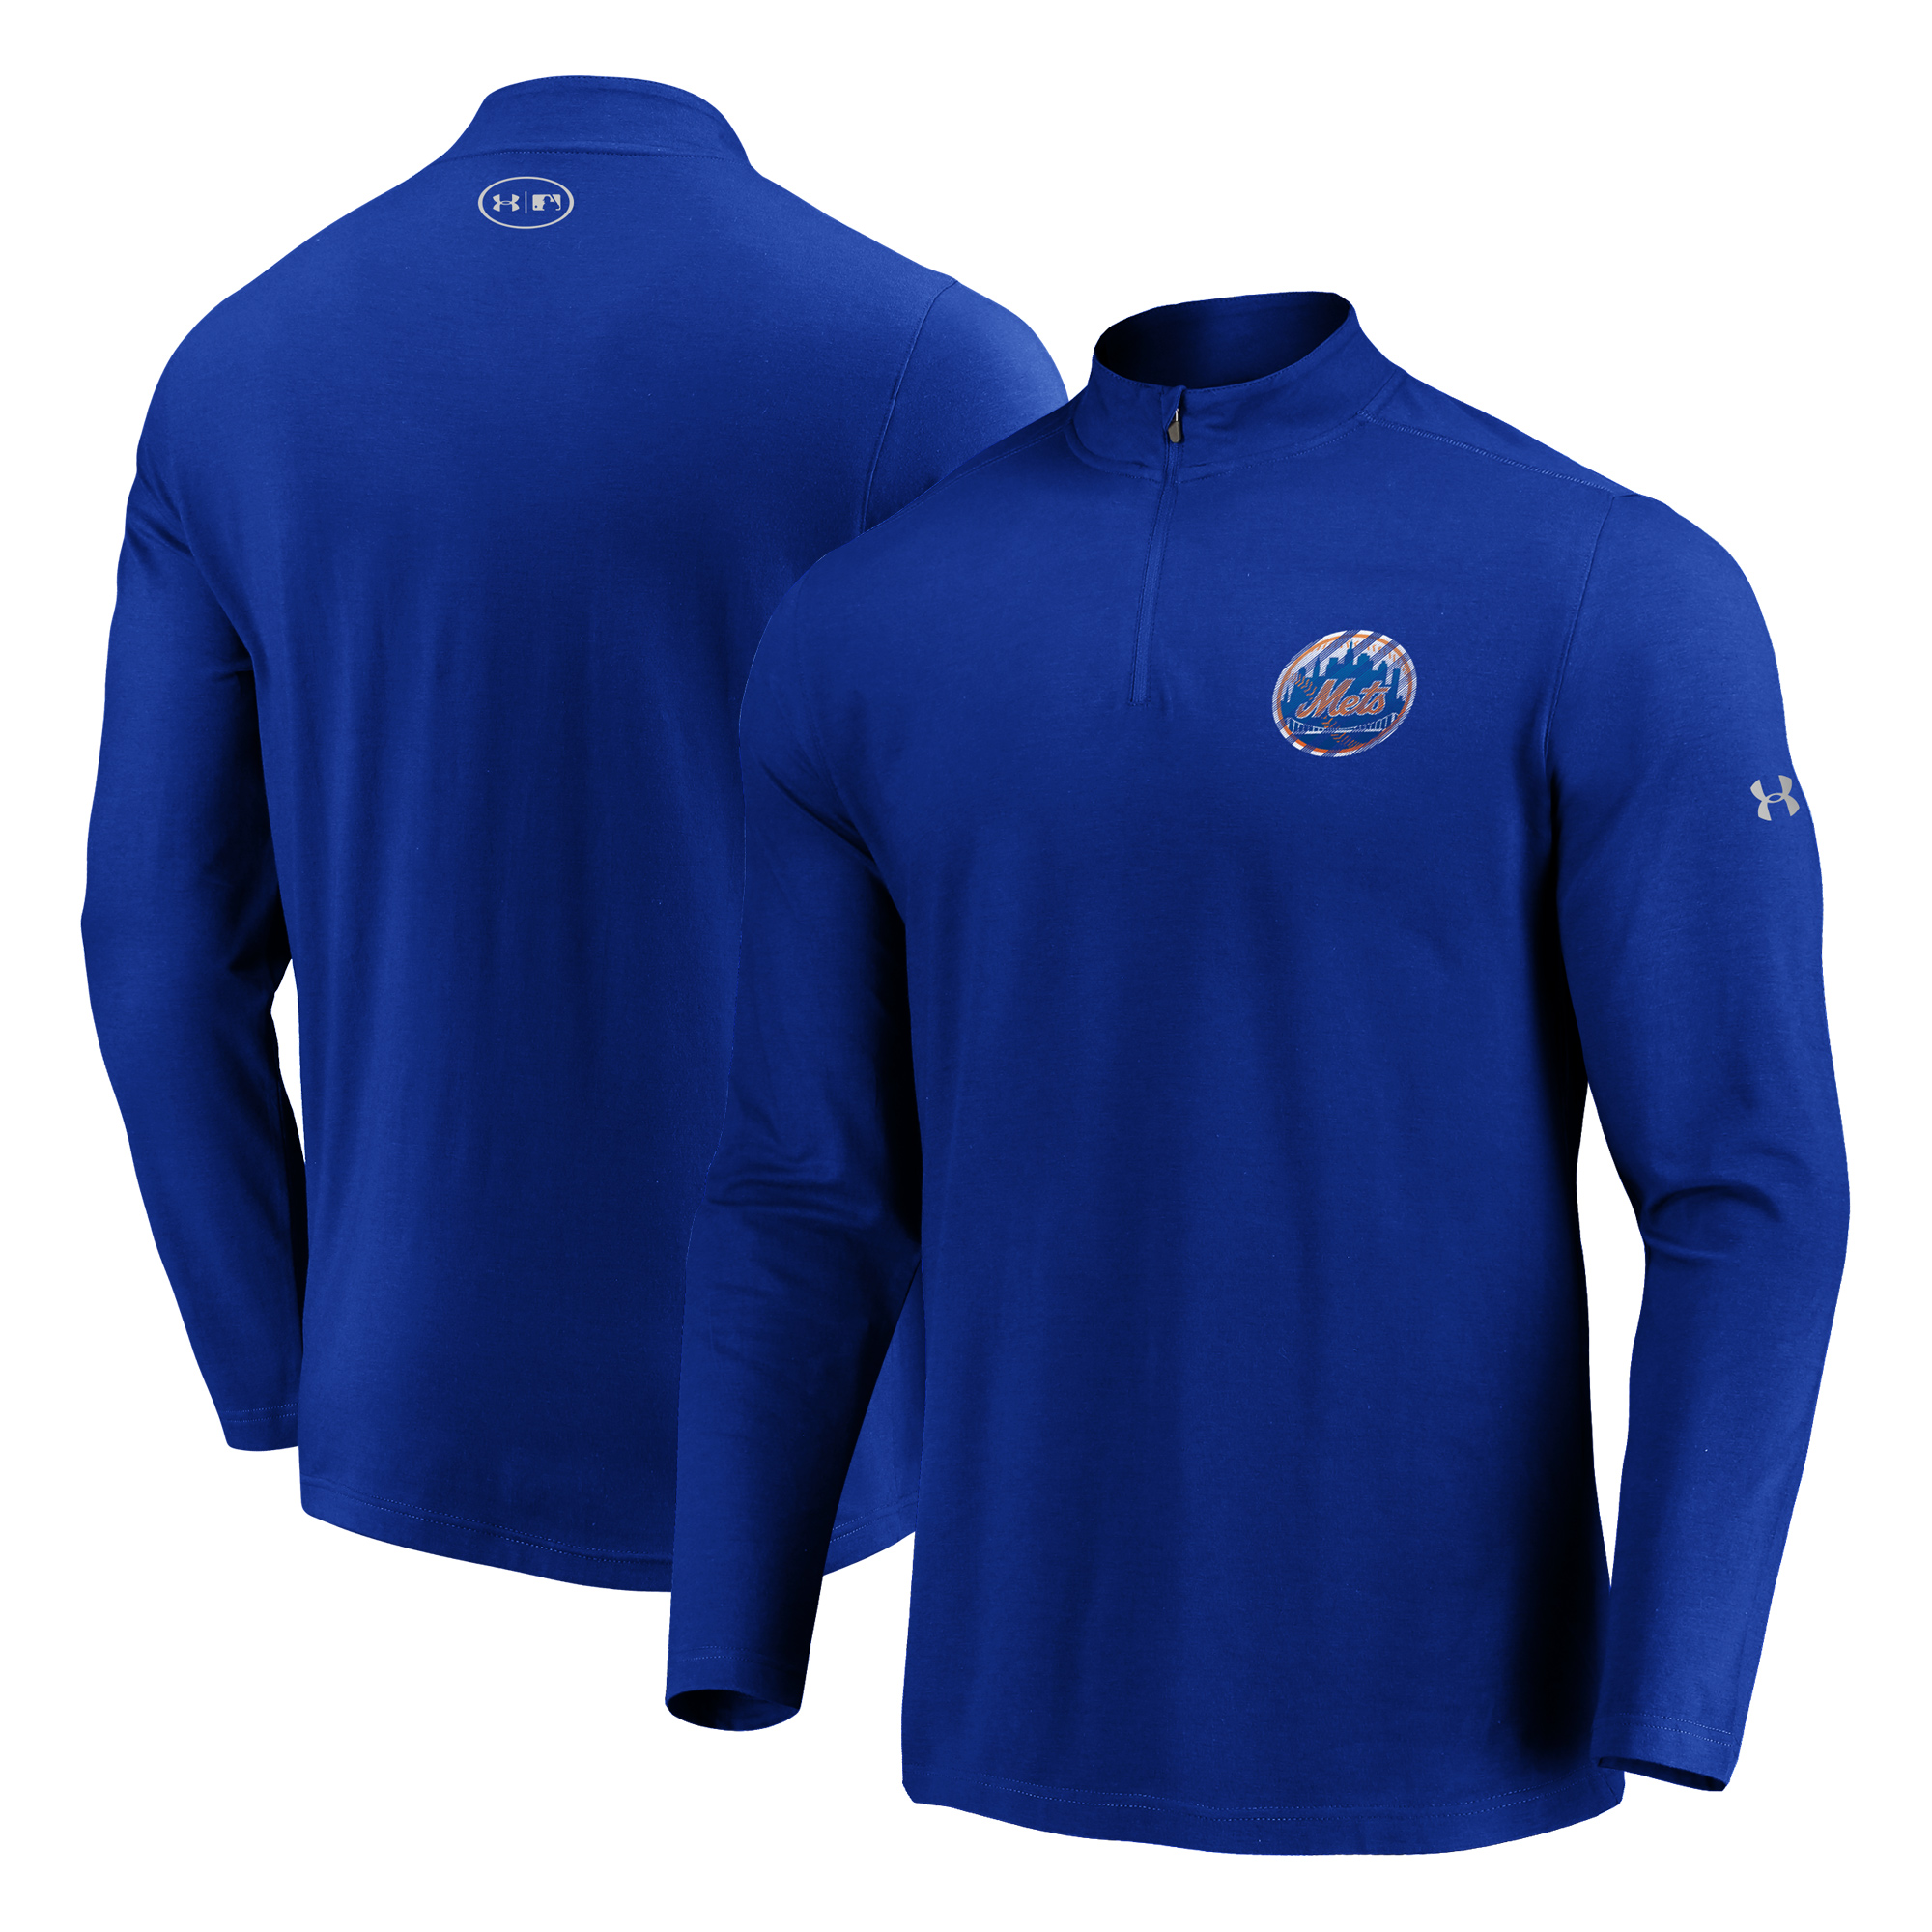 New York Mets Under Armour Passion Alternate Left Chest 1/4-Zip Jacket - Royal